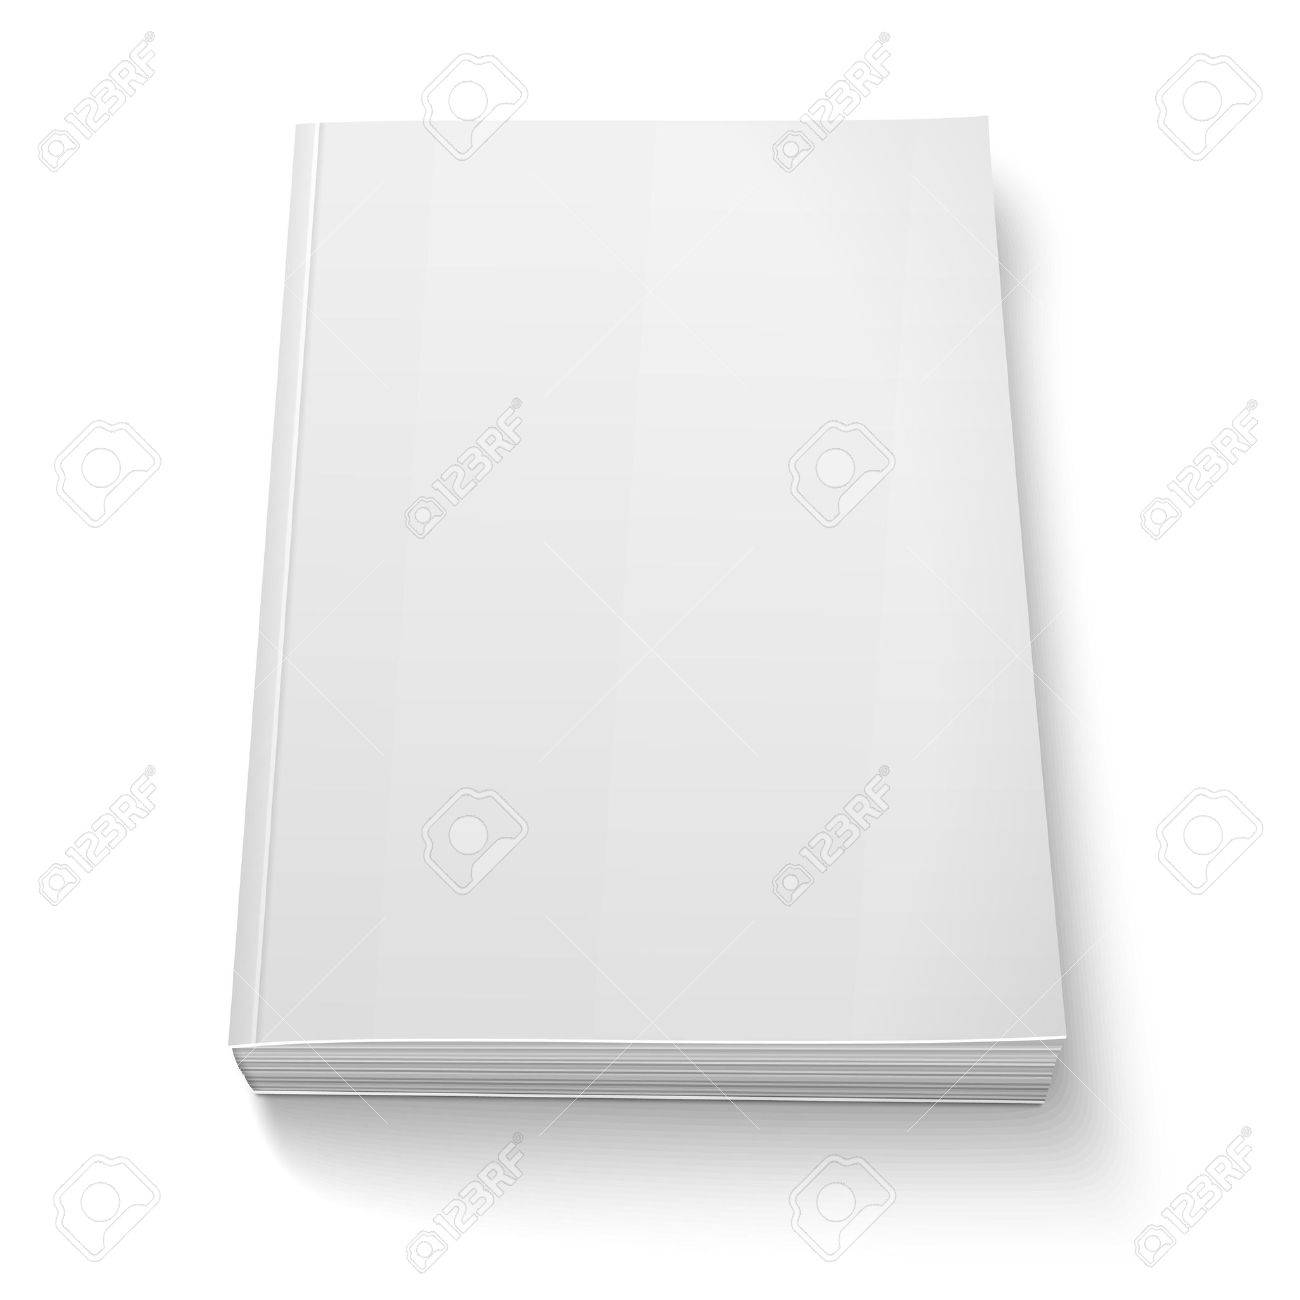 blank softcover book template on white royalty free cliparts